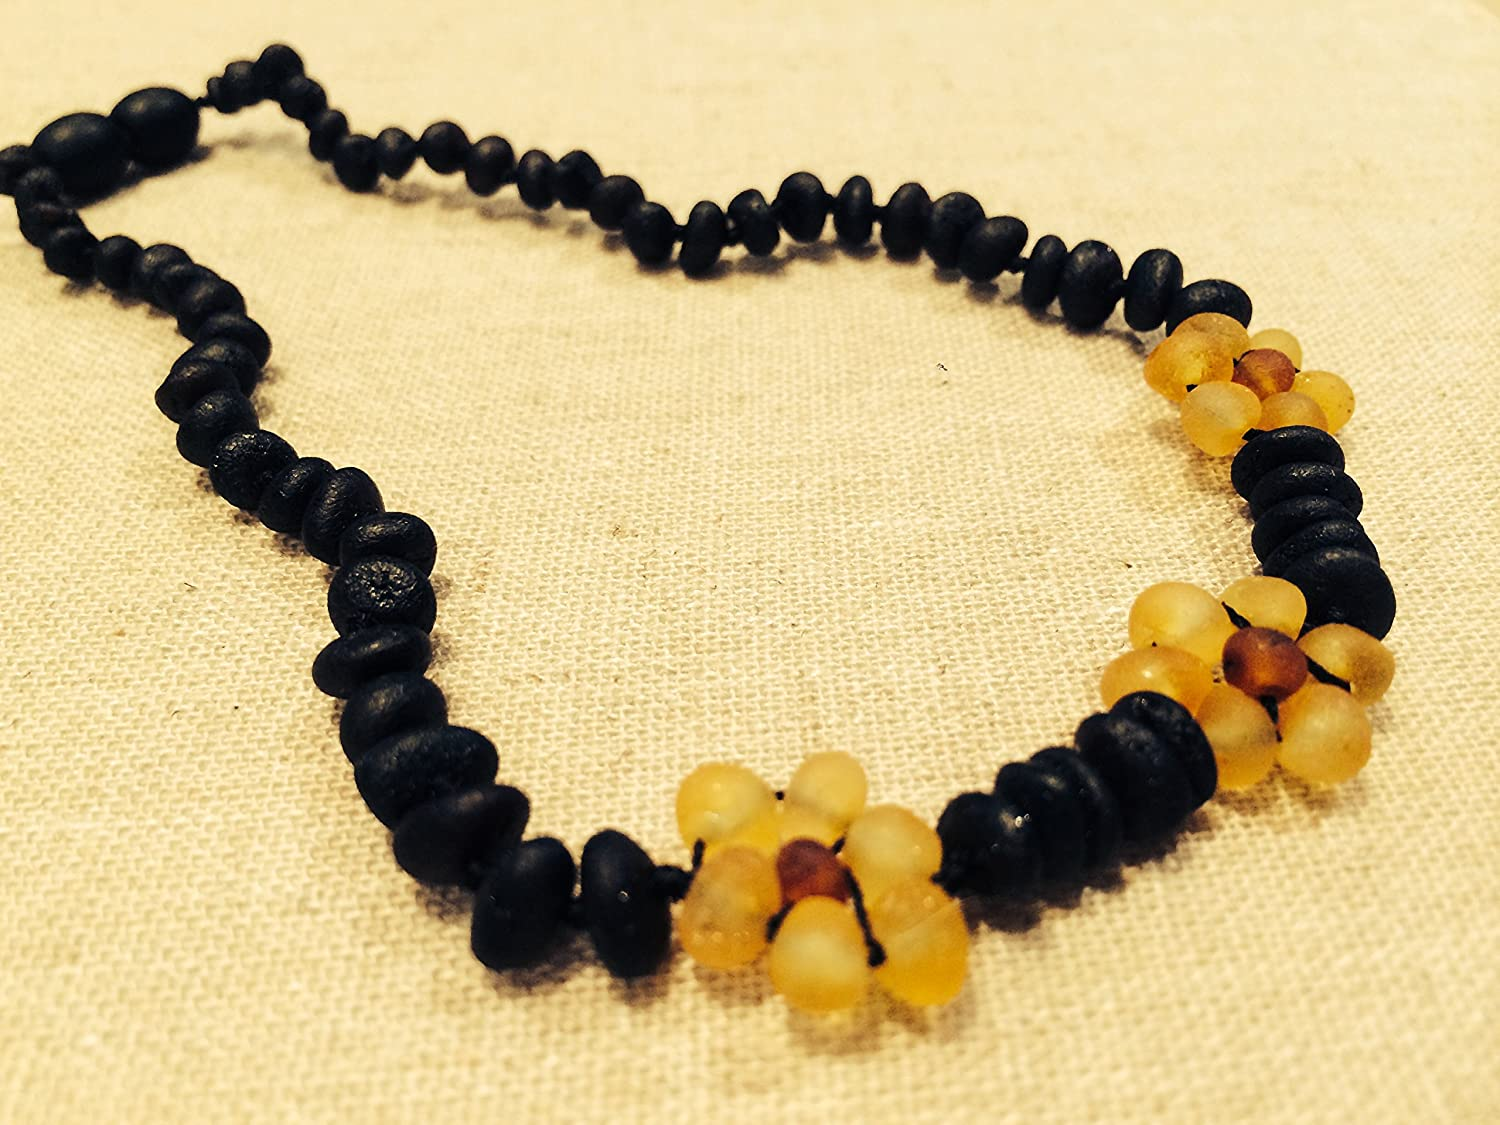 Raw 11 Inch Cherry Lemon Flower Unpolished Raw Baltic Amber Teething Necklace for Babies Baby Infant and Toddlers. Drooling Pain Red Cheeks Certified. by Baltic Essentials   B013GQ70B6